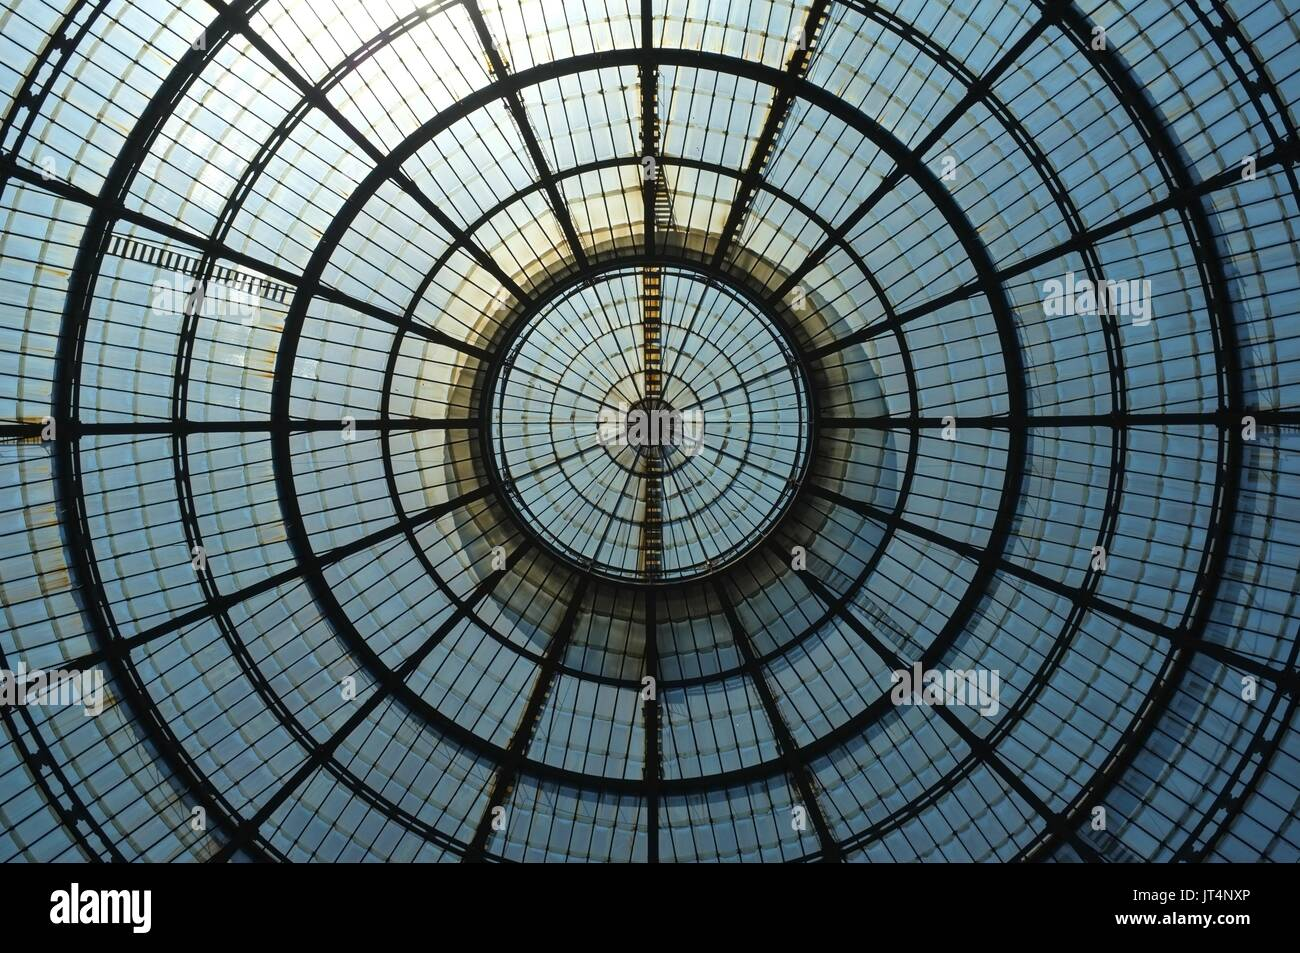 Roof of Galleria Vittorio Emanuele II, Milan, Lombardy, Italy, July 2017 Stock Photo